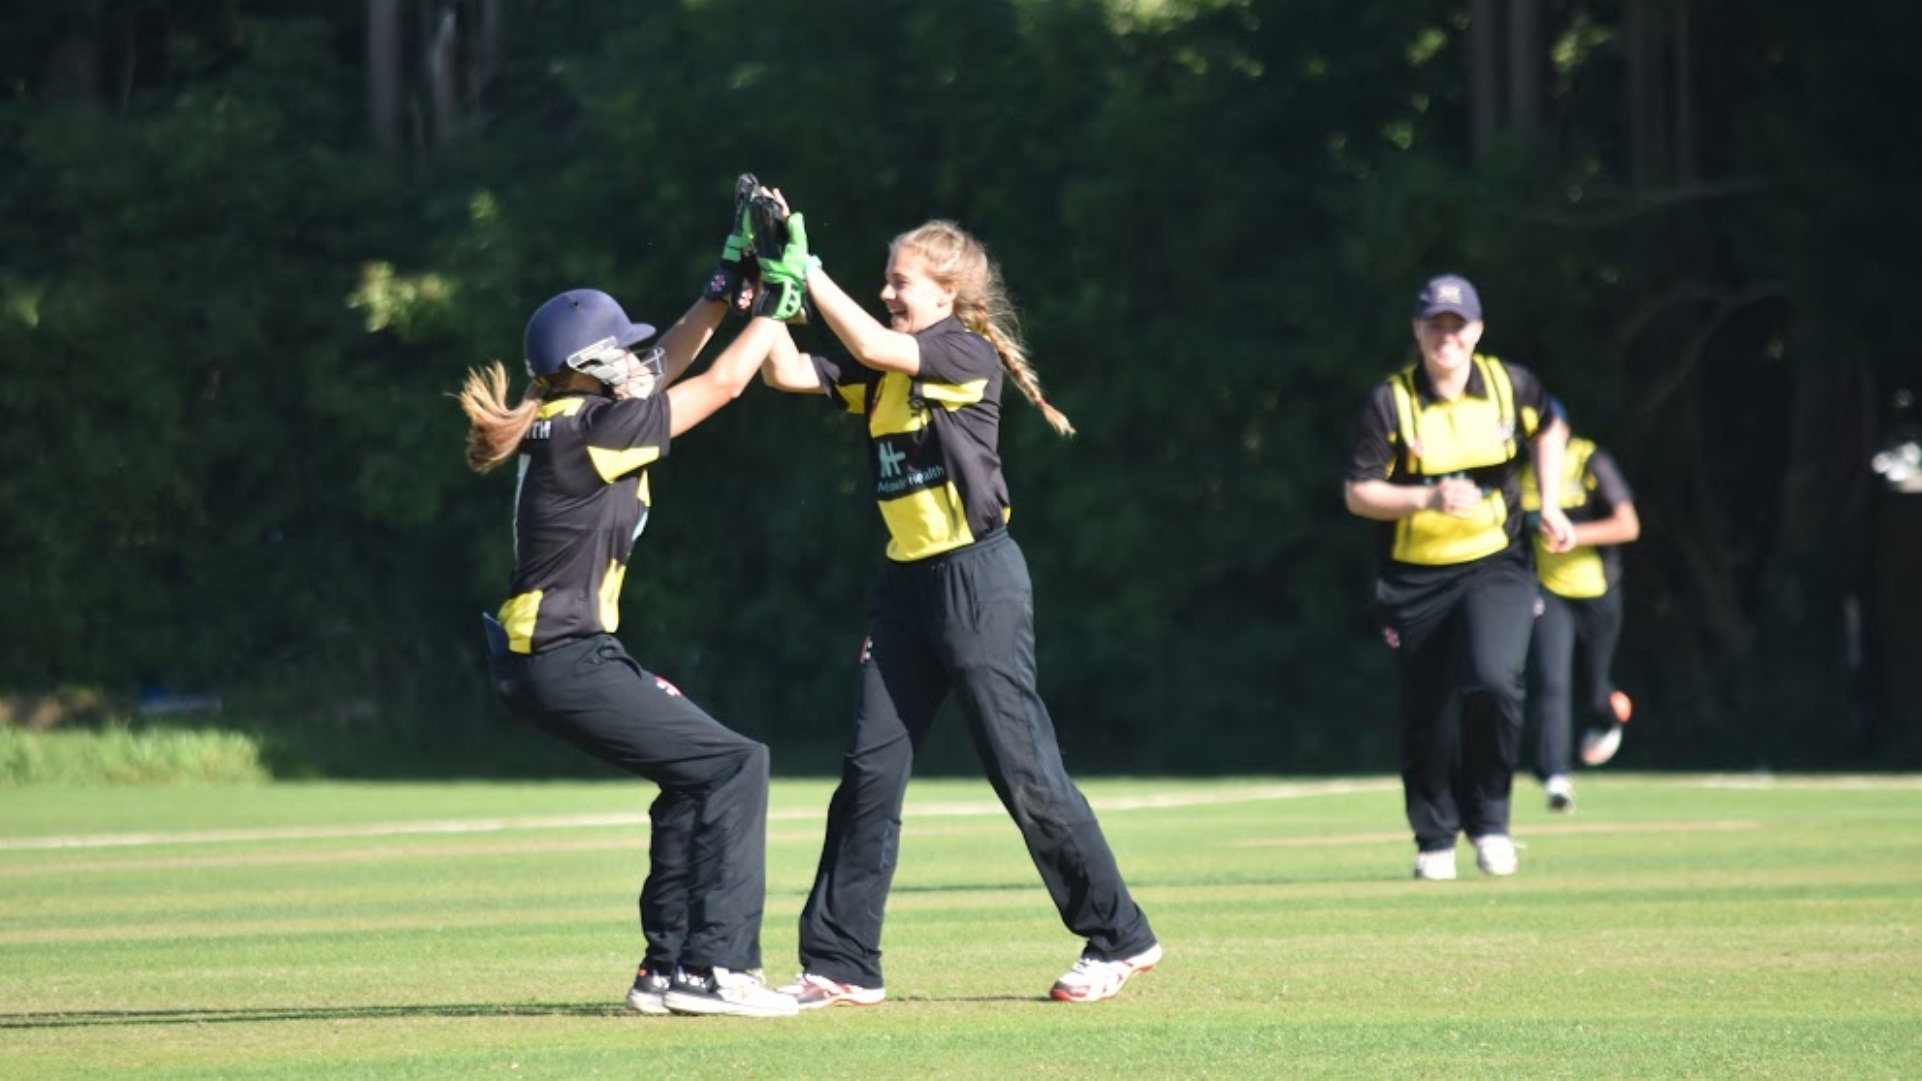 Glos Women start season with new captain and coach